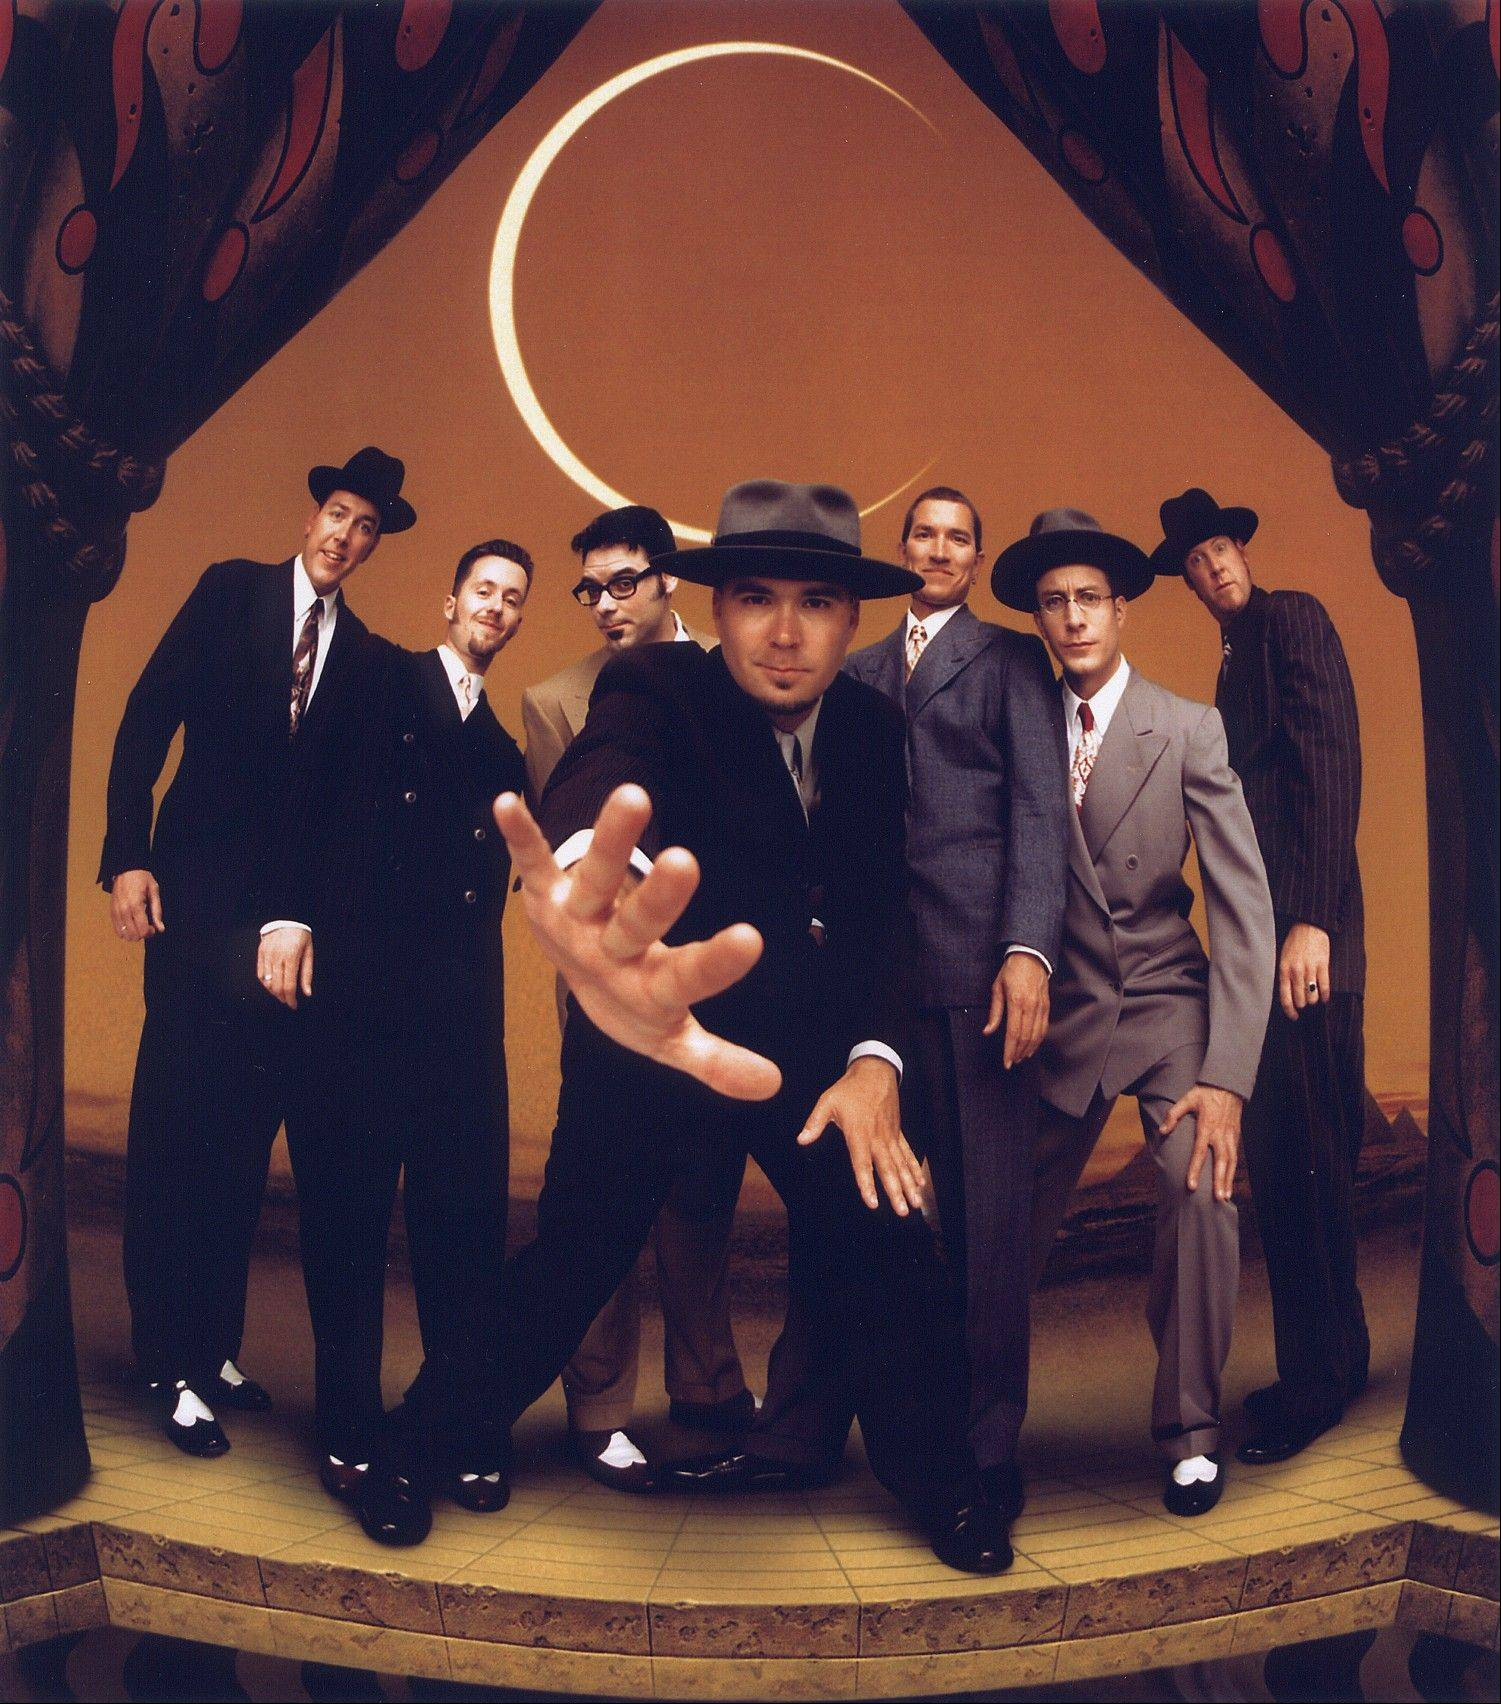 Big Bad Voodoo Daddy brings it energetic live show to North Central College's Pfeiffer Hall on Saturday, May 18.